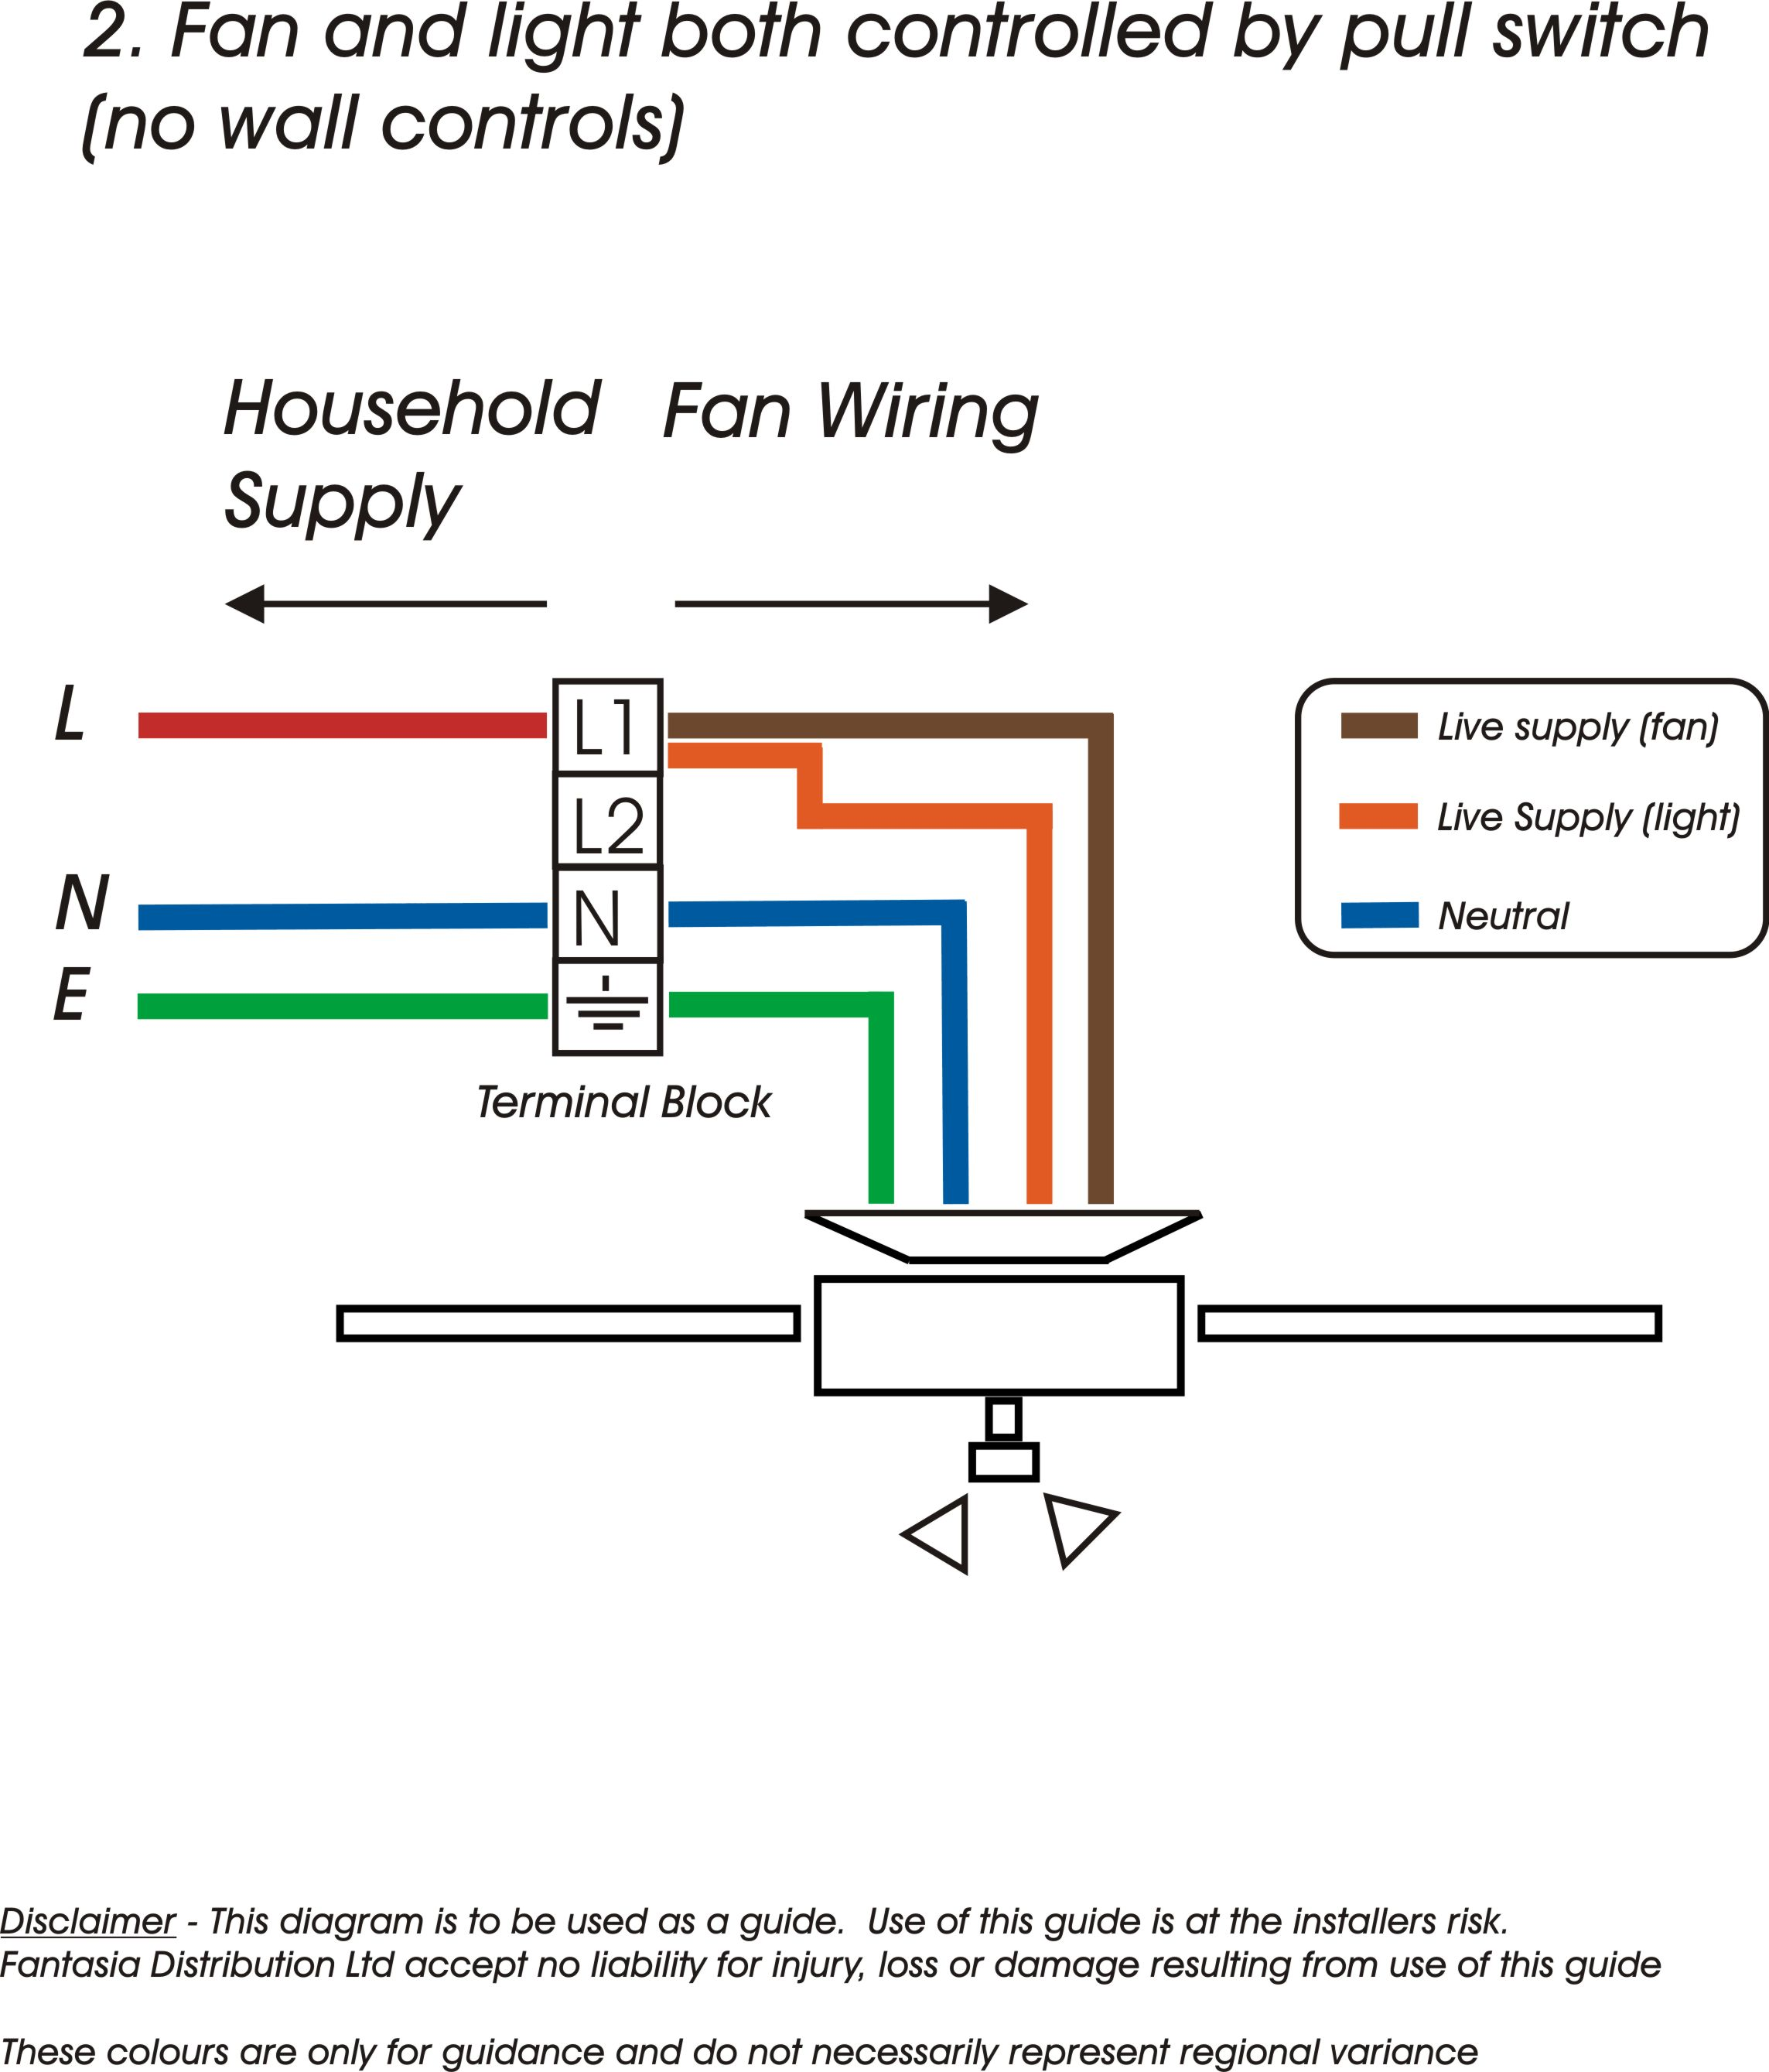 wiring ceiling fans 2?resize=800%2C937 wiring a ceiling fan diagram wiring a hot tub diagram, wiring a ceiling fan diagram wiring at gsmportal.co